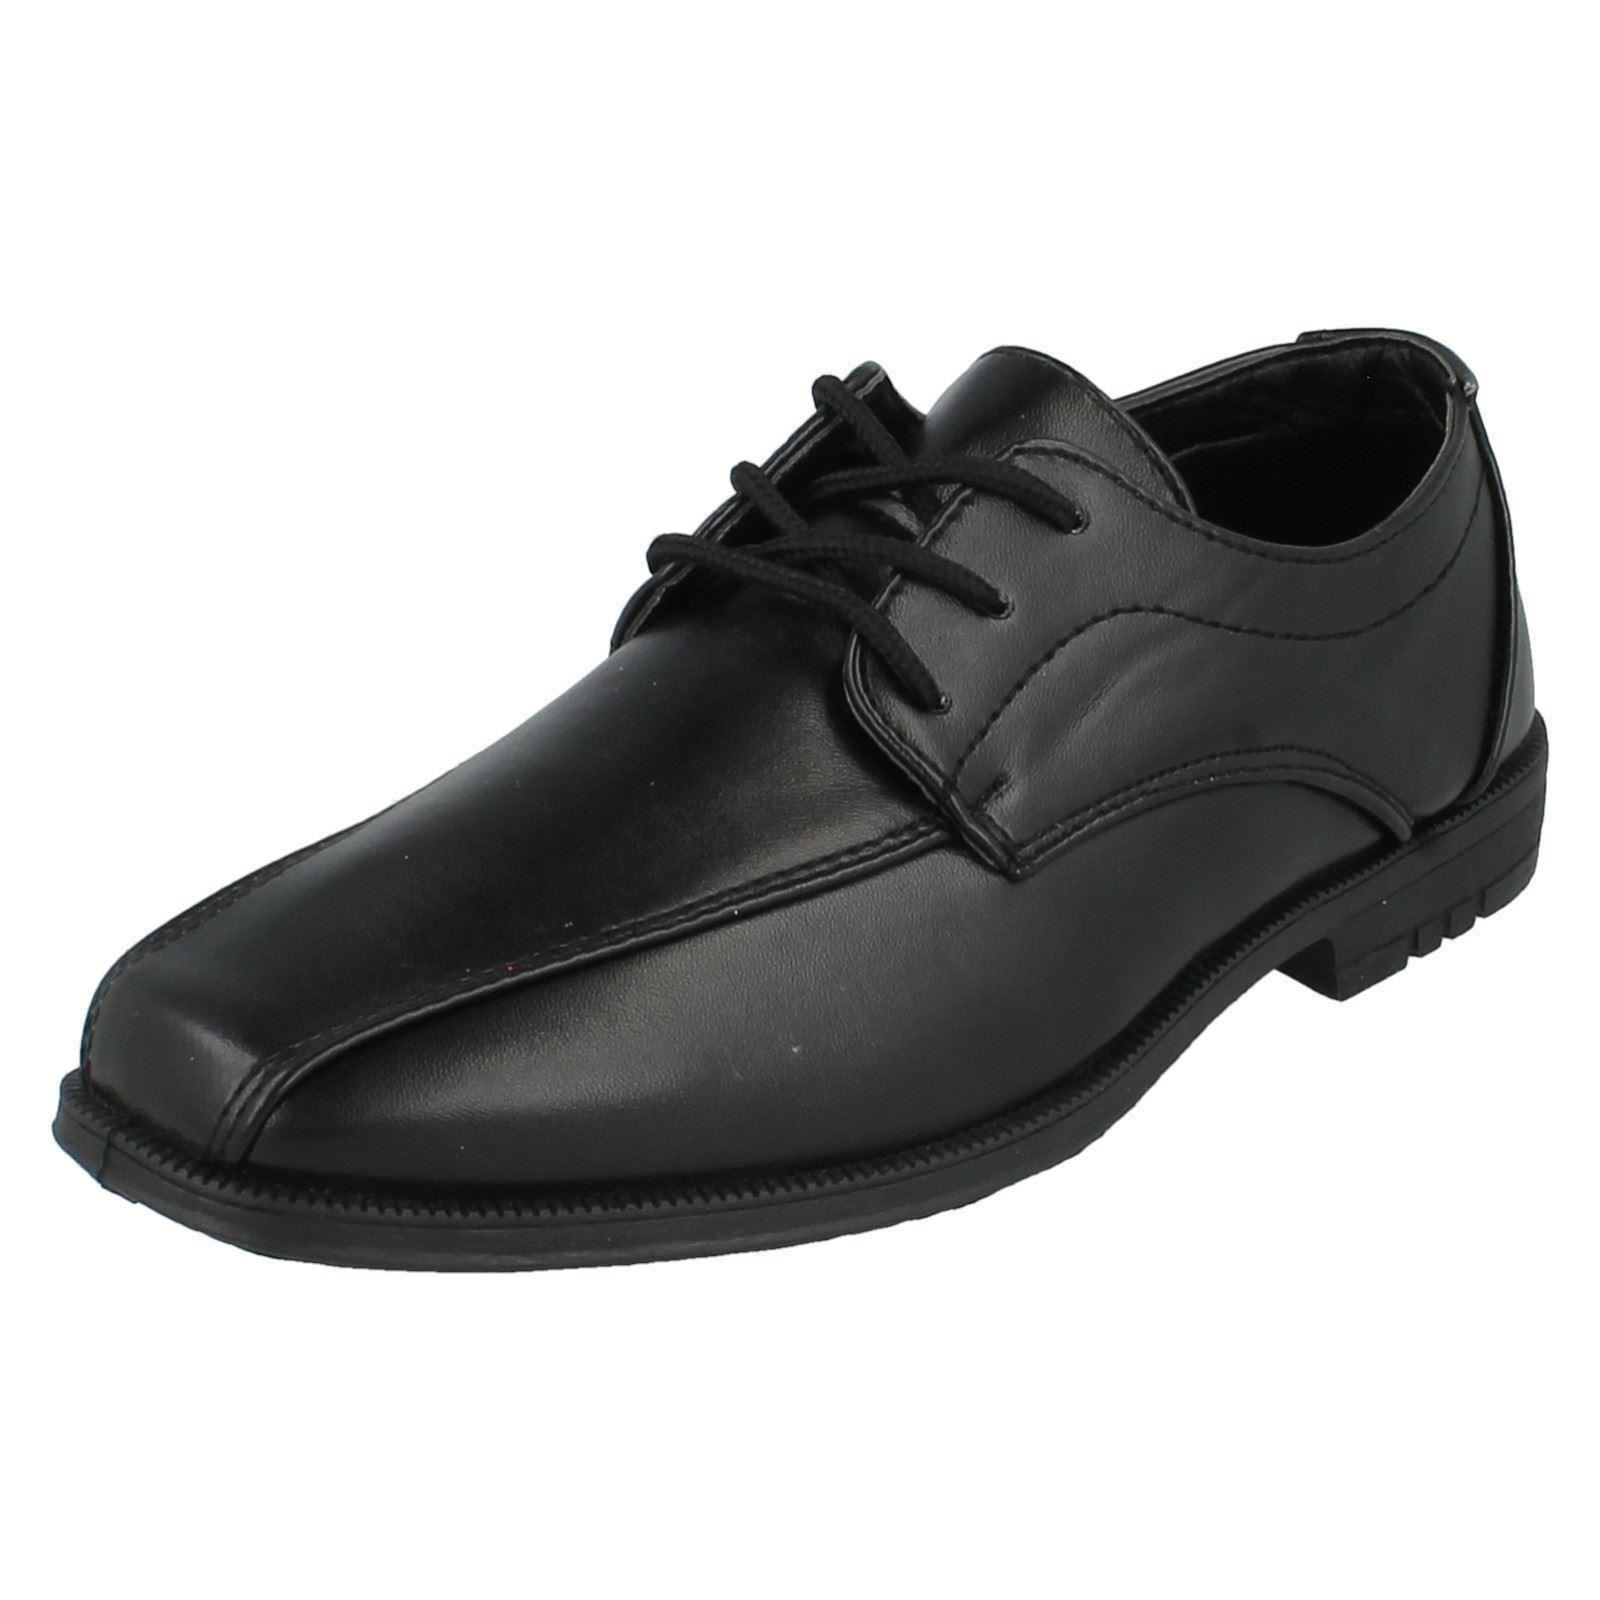 Boys JCDees Shoes Label - N1111